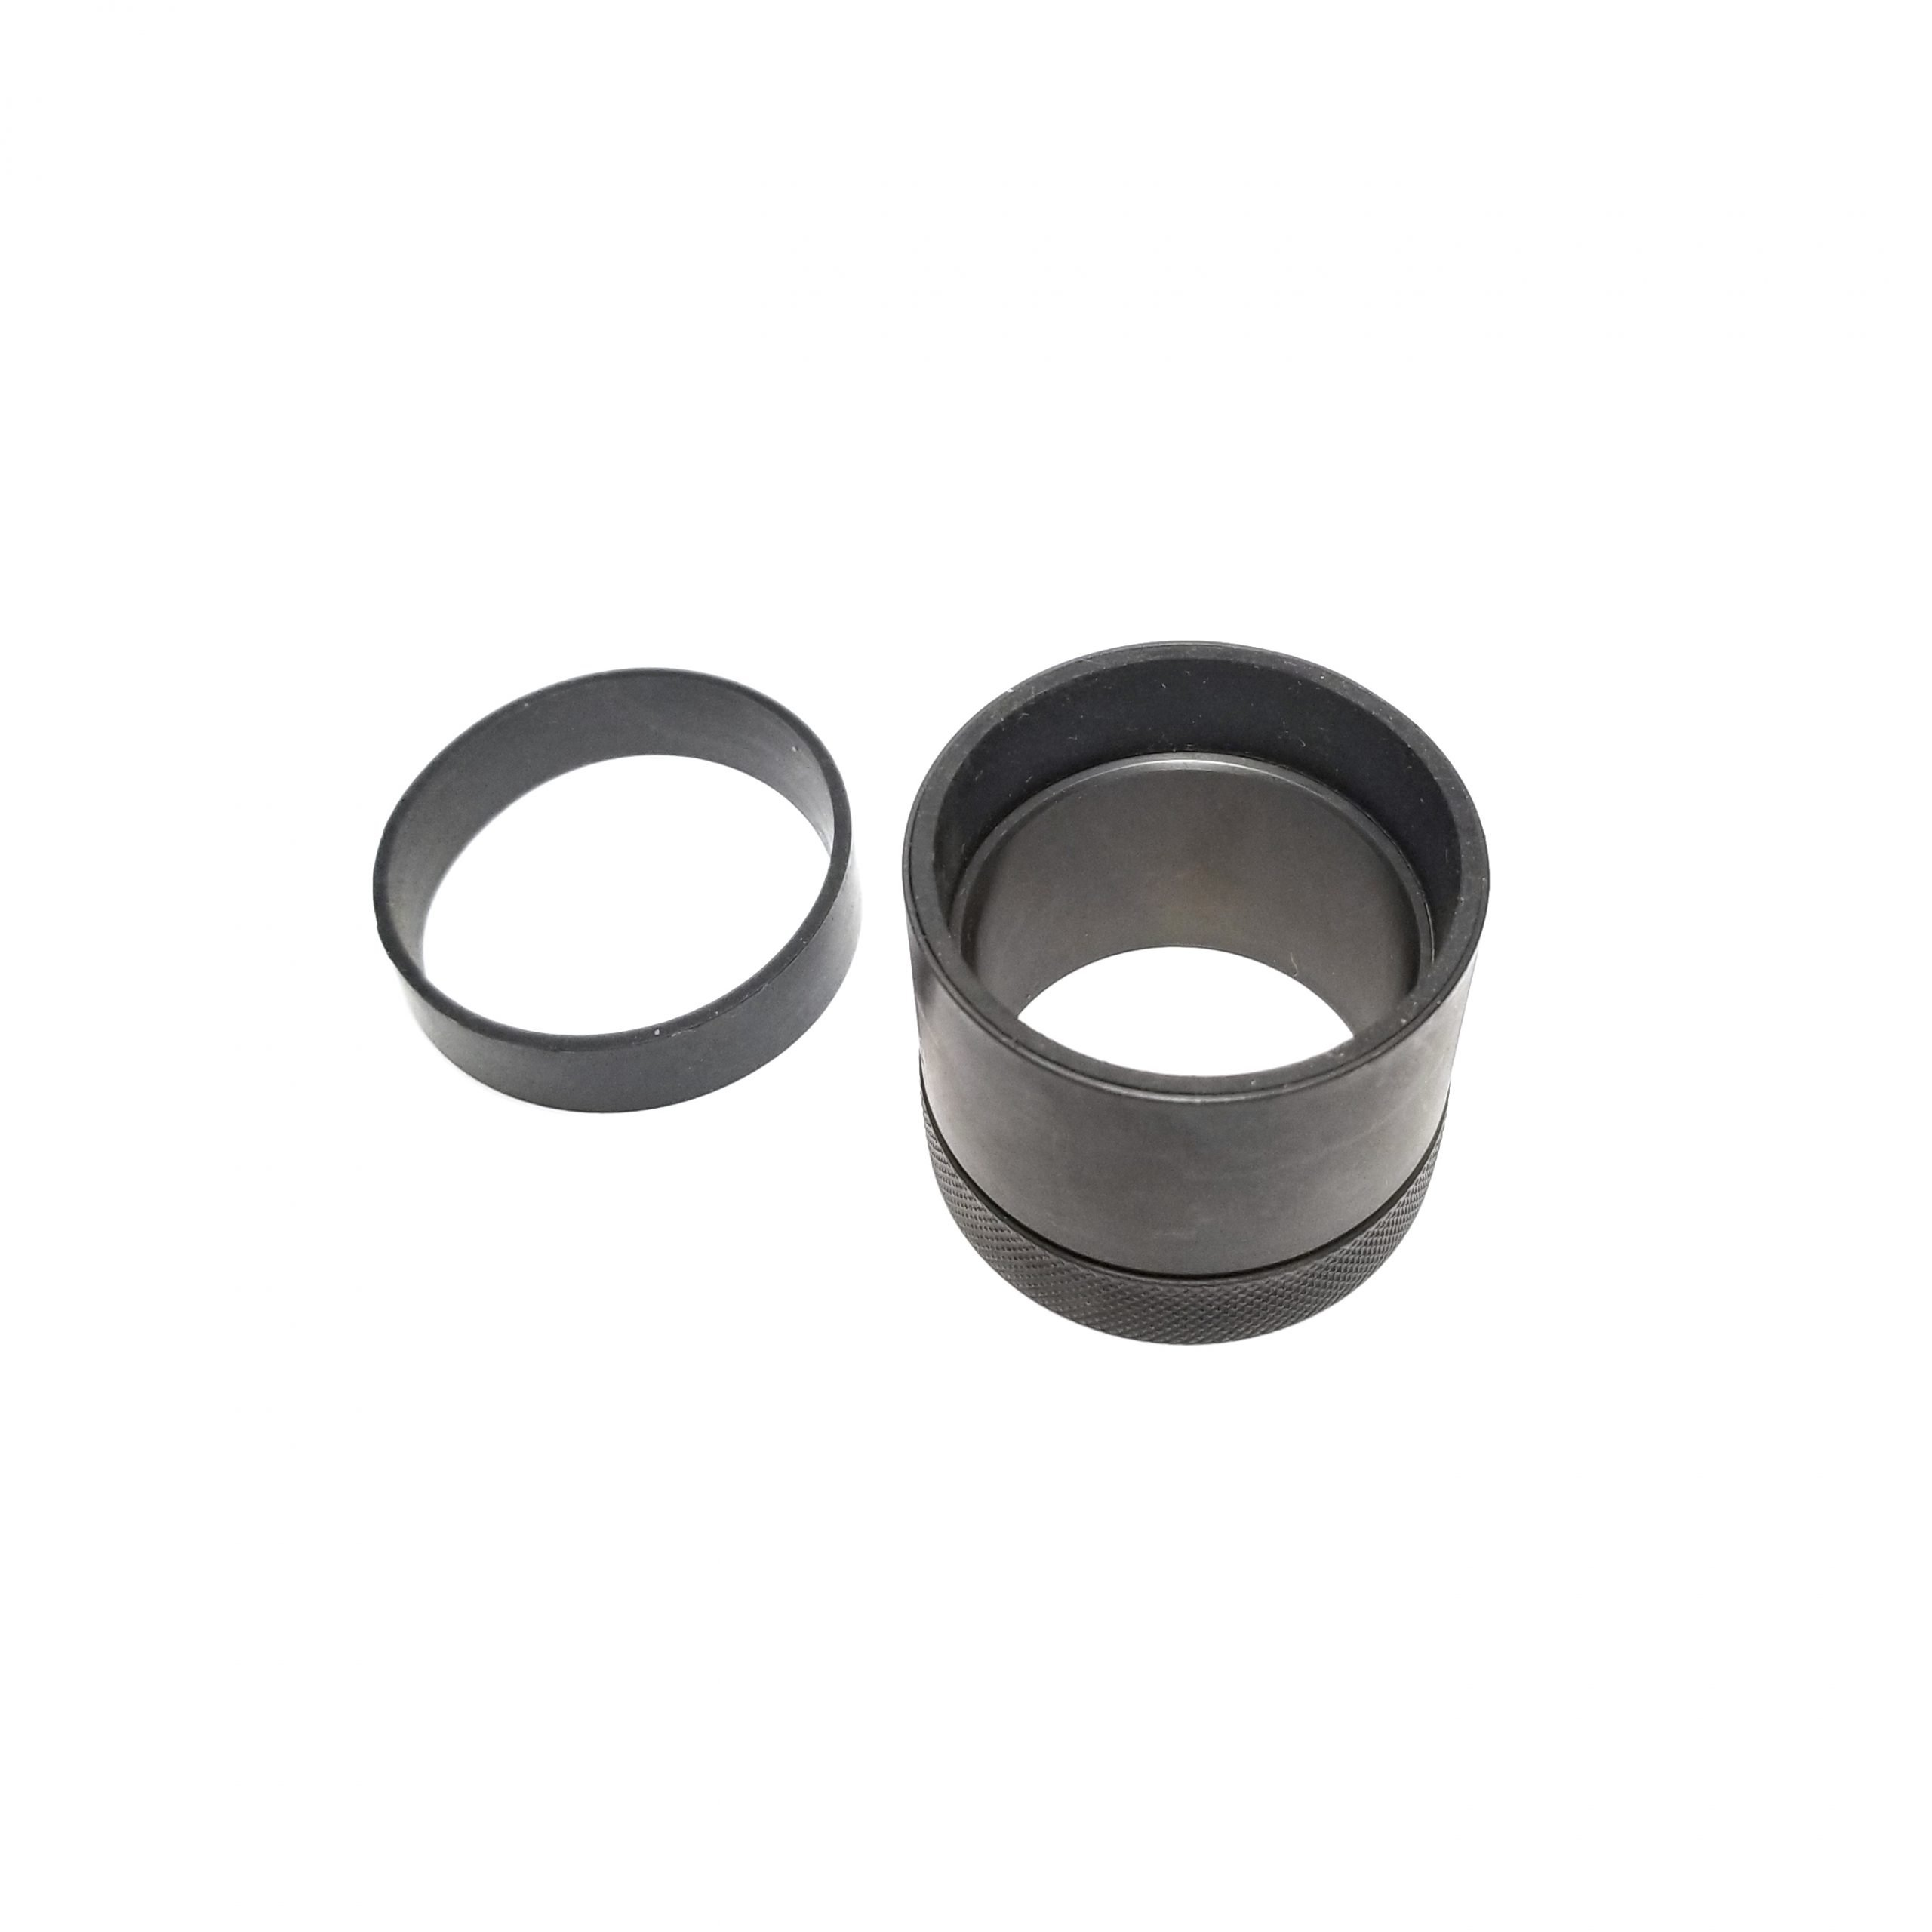 126-0714 IGNITION LOCK COVER REMOVER